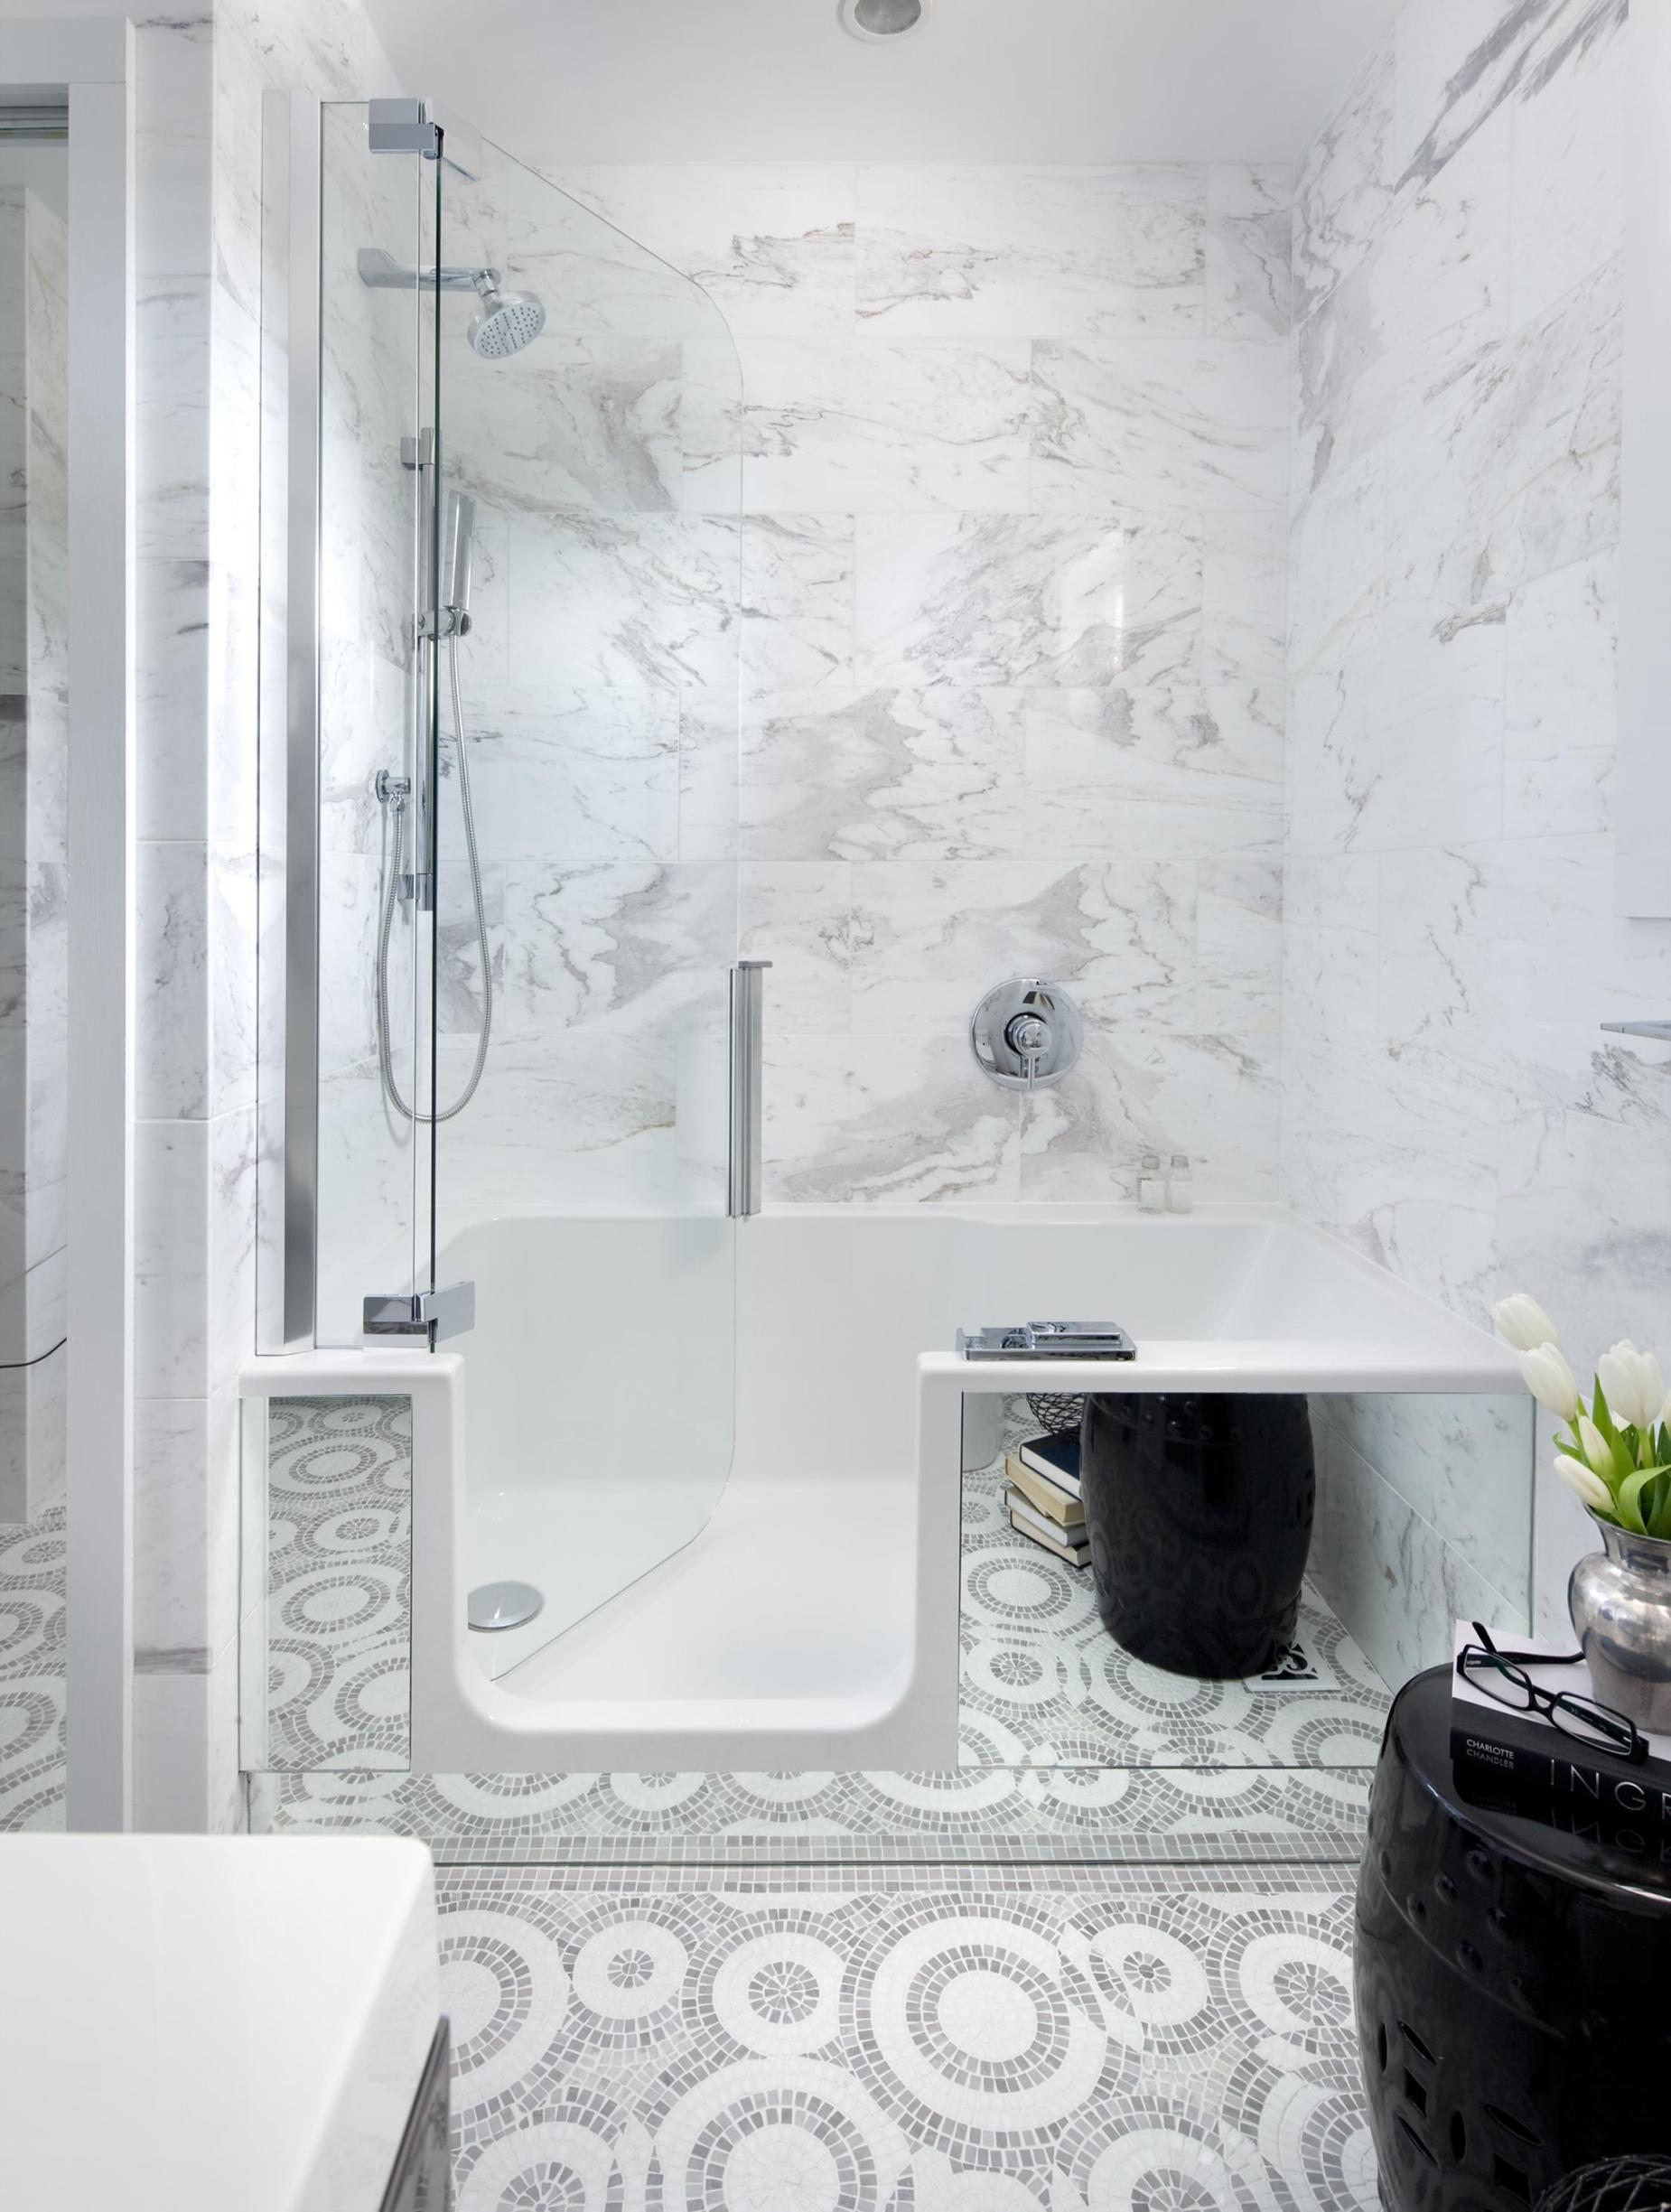 Spa Bathroom Remodel For Small Space 13